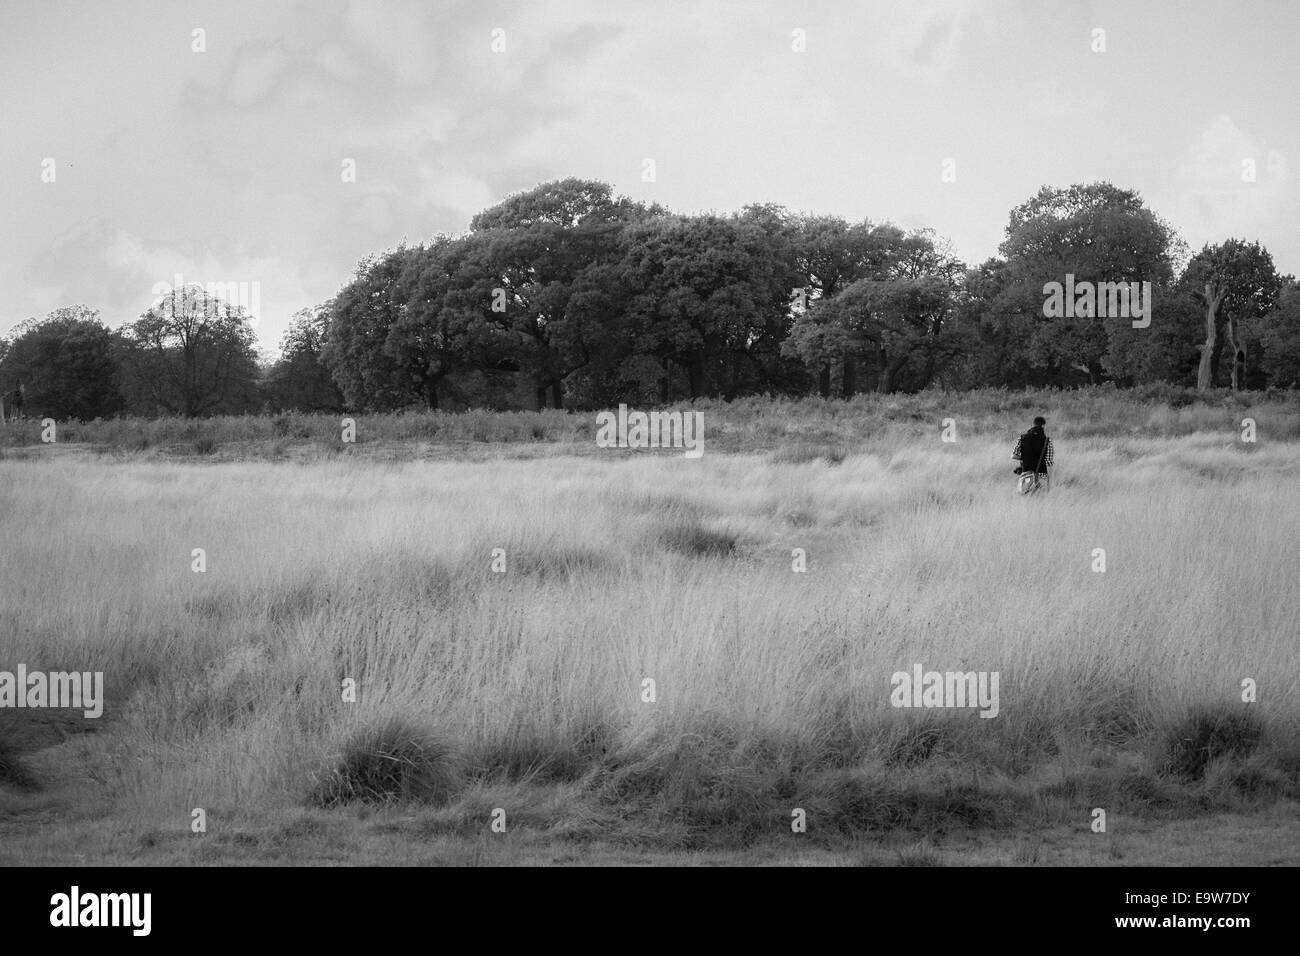 Wandering through Richmond Park - Stock Image